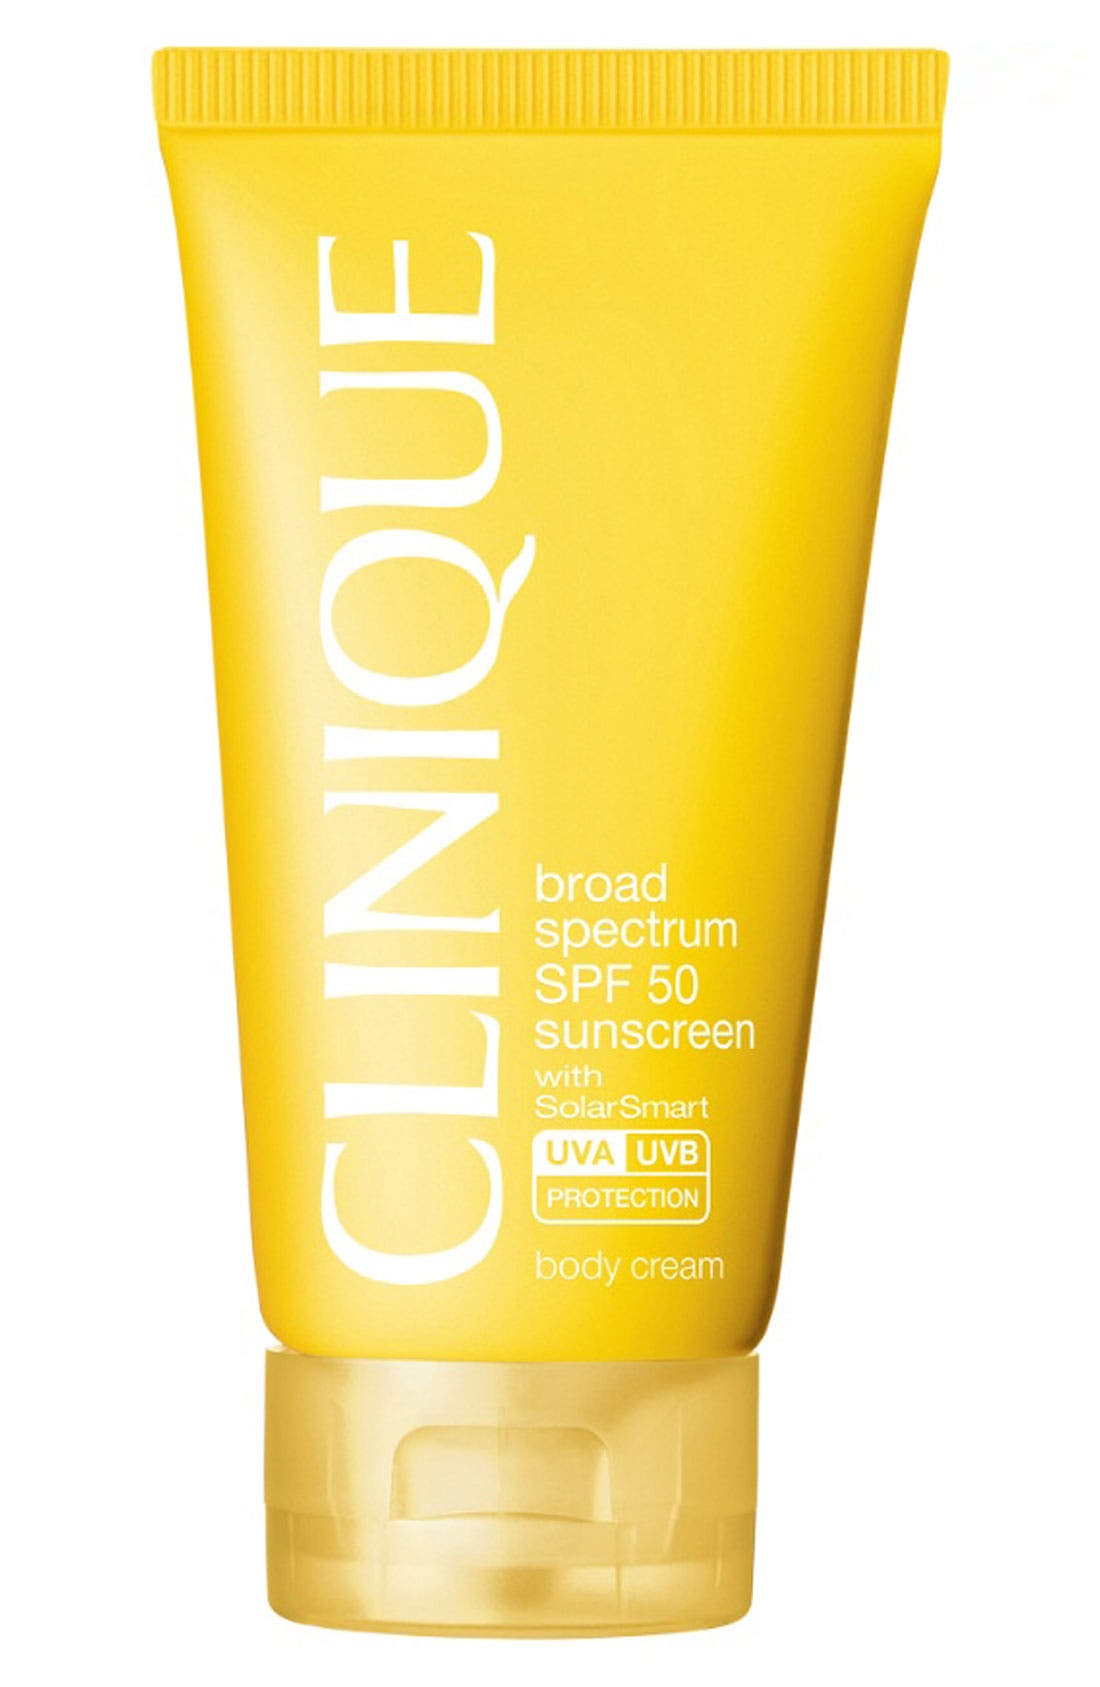 Clinique 'Sun' Broad Spectrum SPF 50 Body Cream